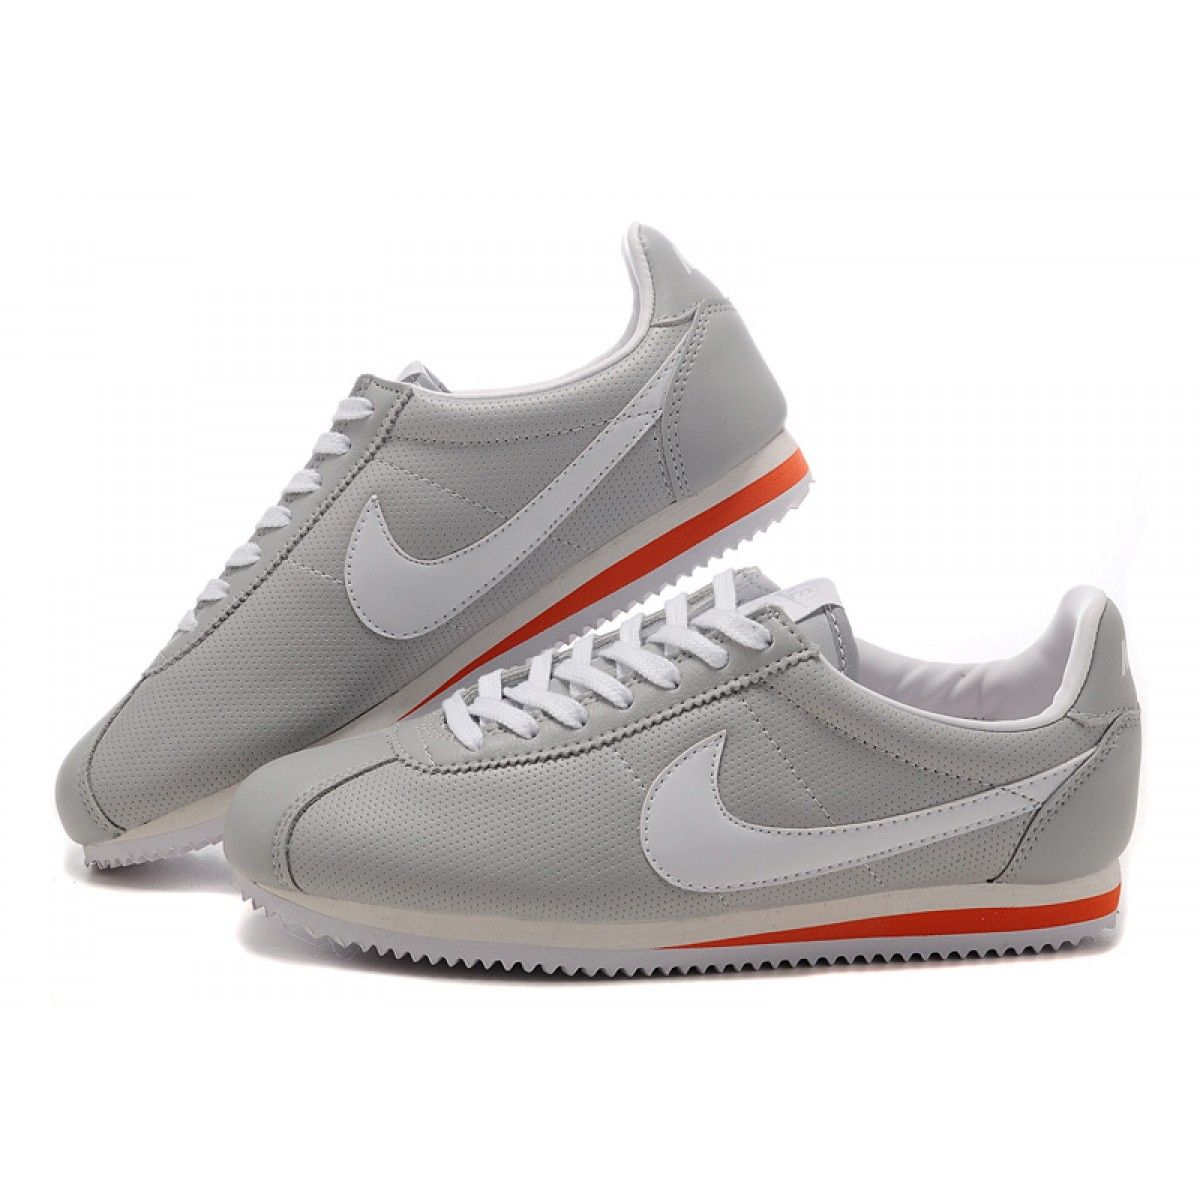 13bfebd595f Nike Cortez Women Leather Shoes Gray White Red